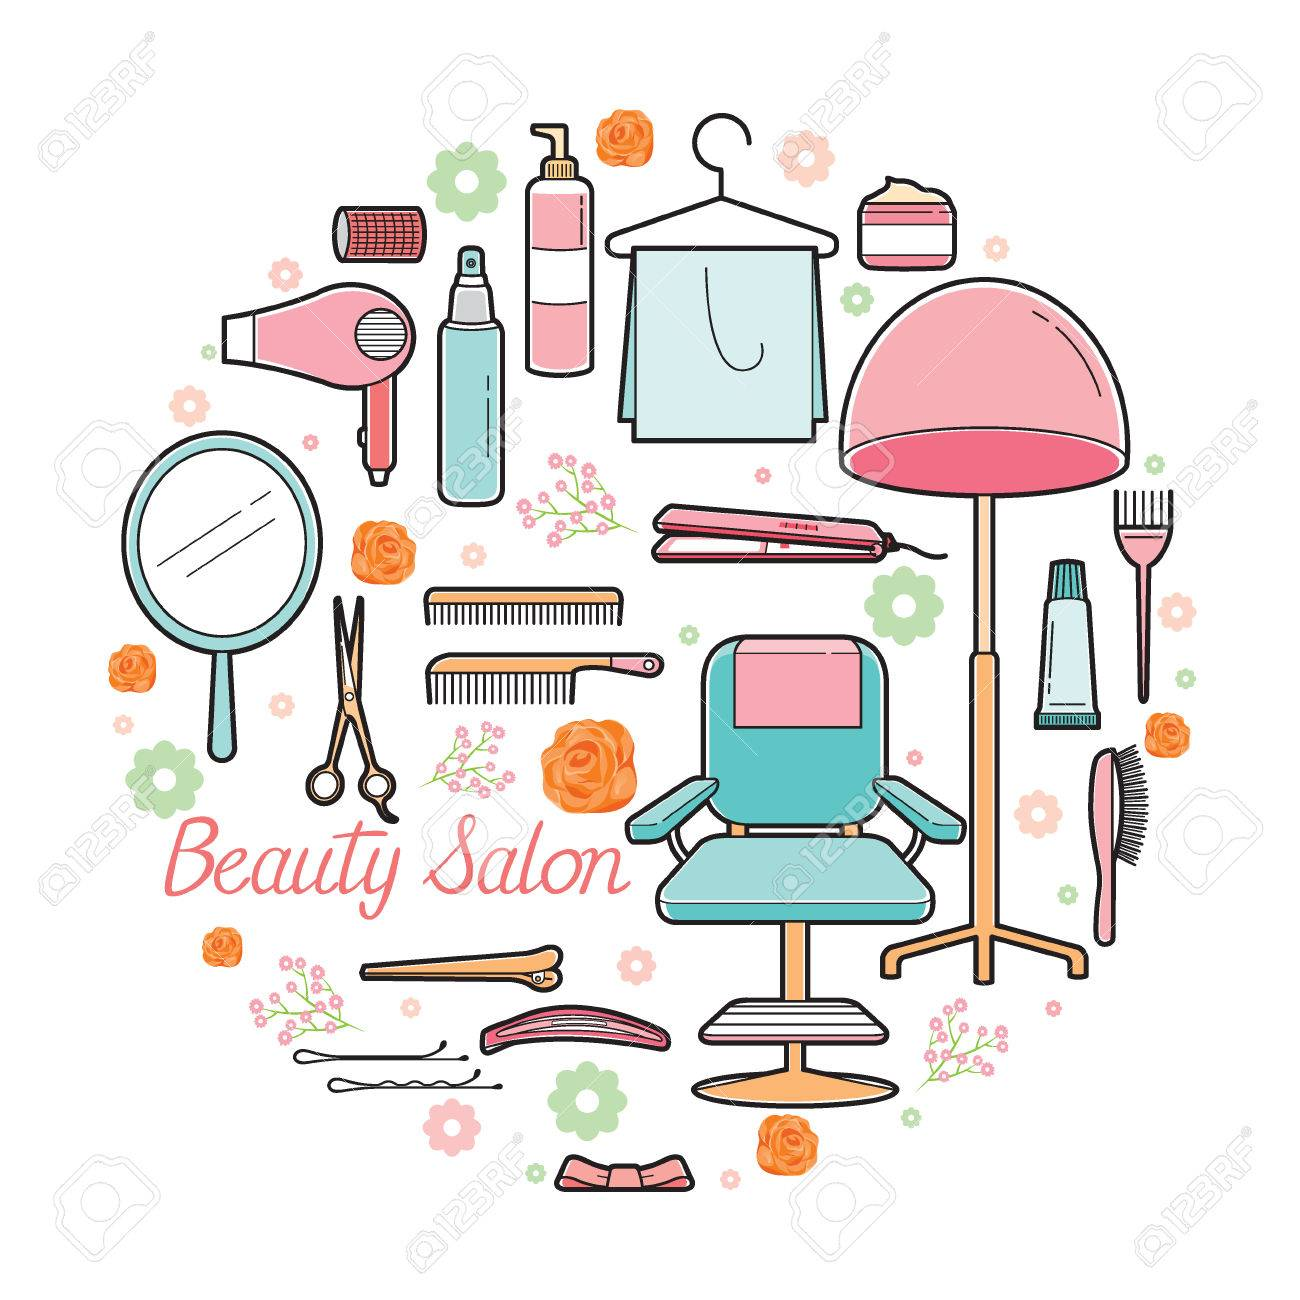 Hair Salon Equipments Set Accessories Equipment Hairdressing Royalty Free Cliparts Vectors And Stock Illustration Image 61980115